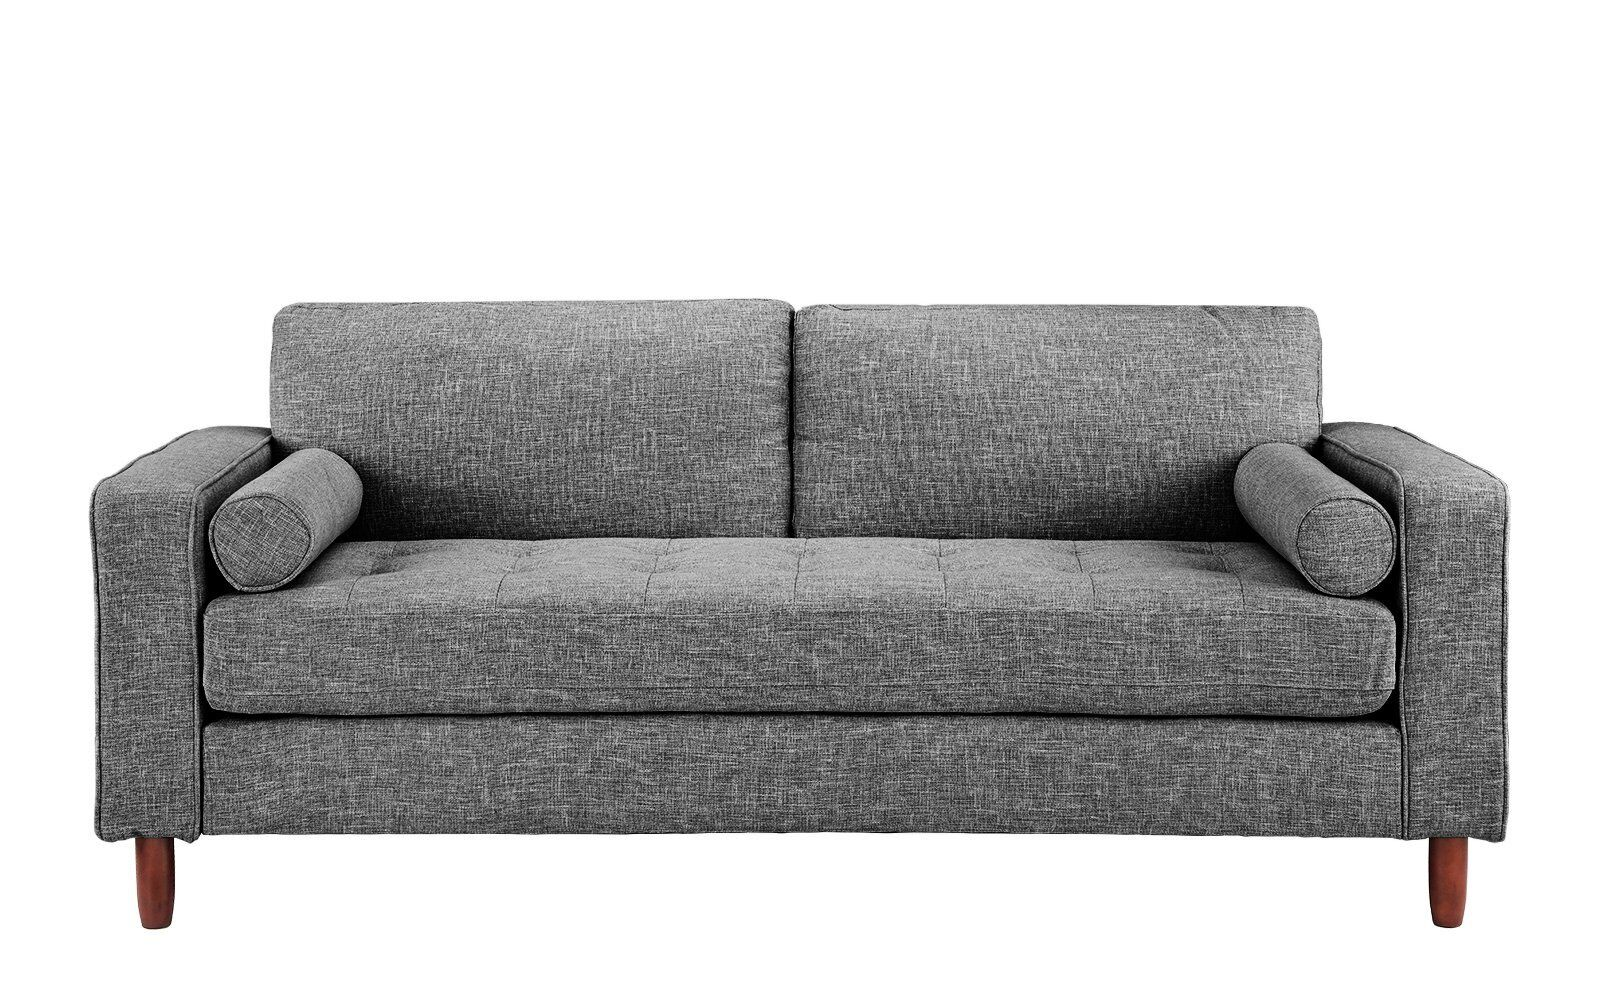 Modern Fabric Sofa With Tufted Linen Fabric Living Room Couch Light Grey